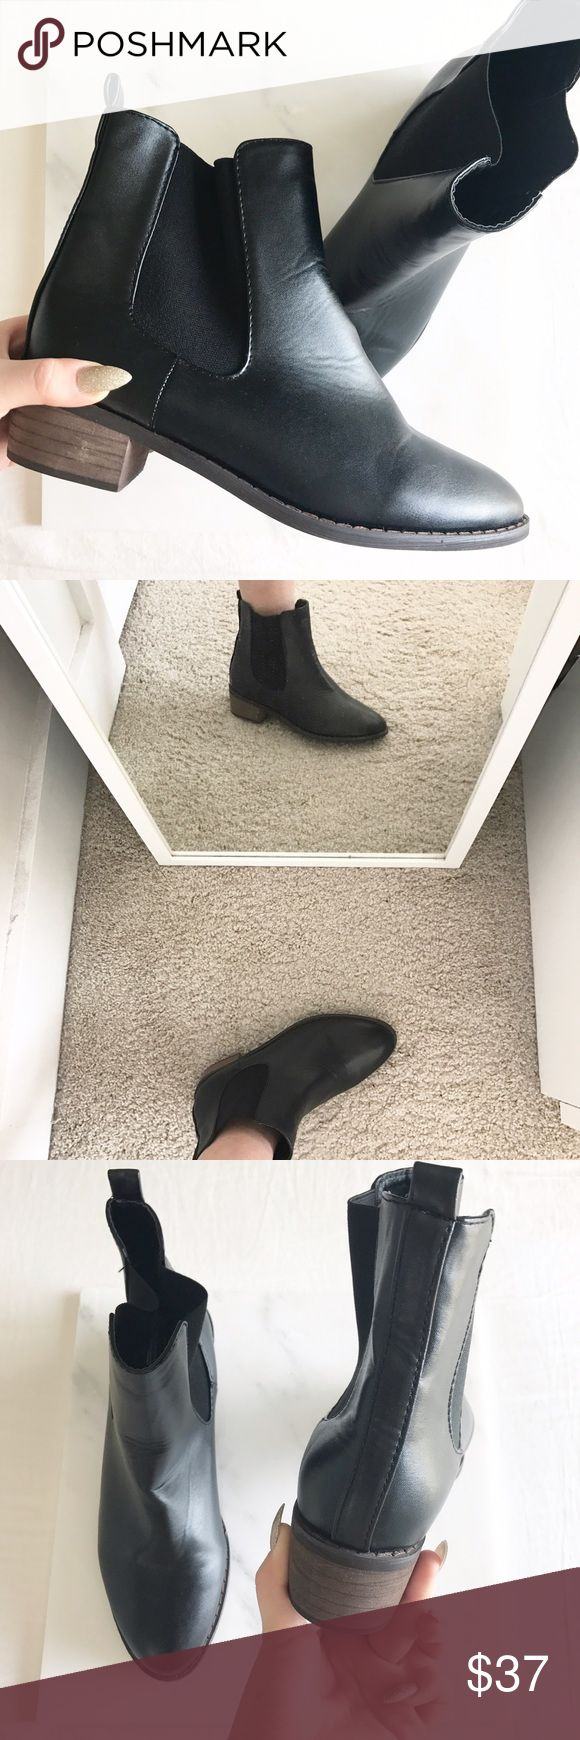 black leather chelsea boots heel is 1 inch | new never worn | slight creasing due to storage | NOT UO, TAGGED FOR VISIBILITY Urban Outfitters Shoes Ankle Boots & Booties